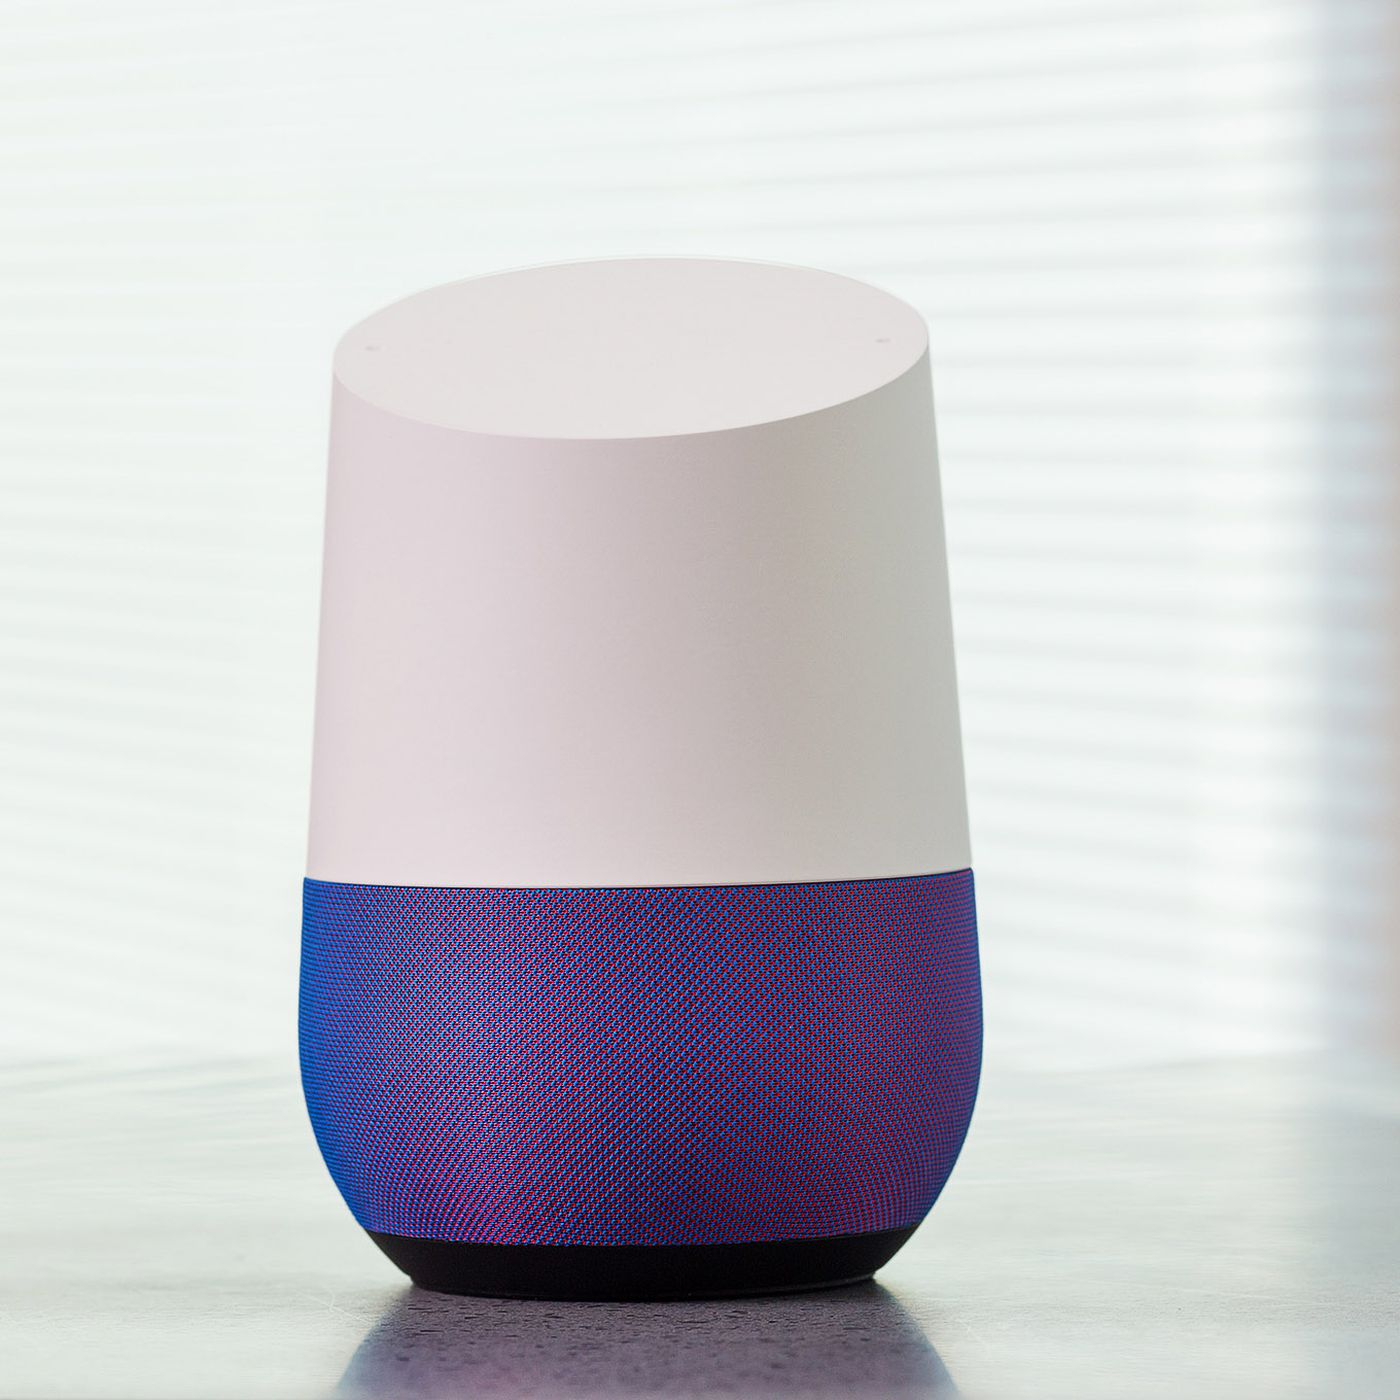 Google finally enables Bluetooth audio streaming for Home speaker ... 5e5cd3f321622